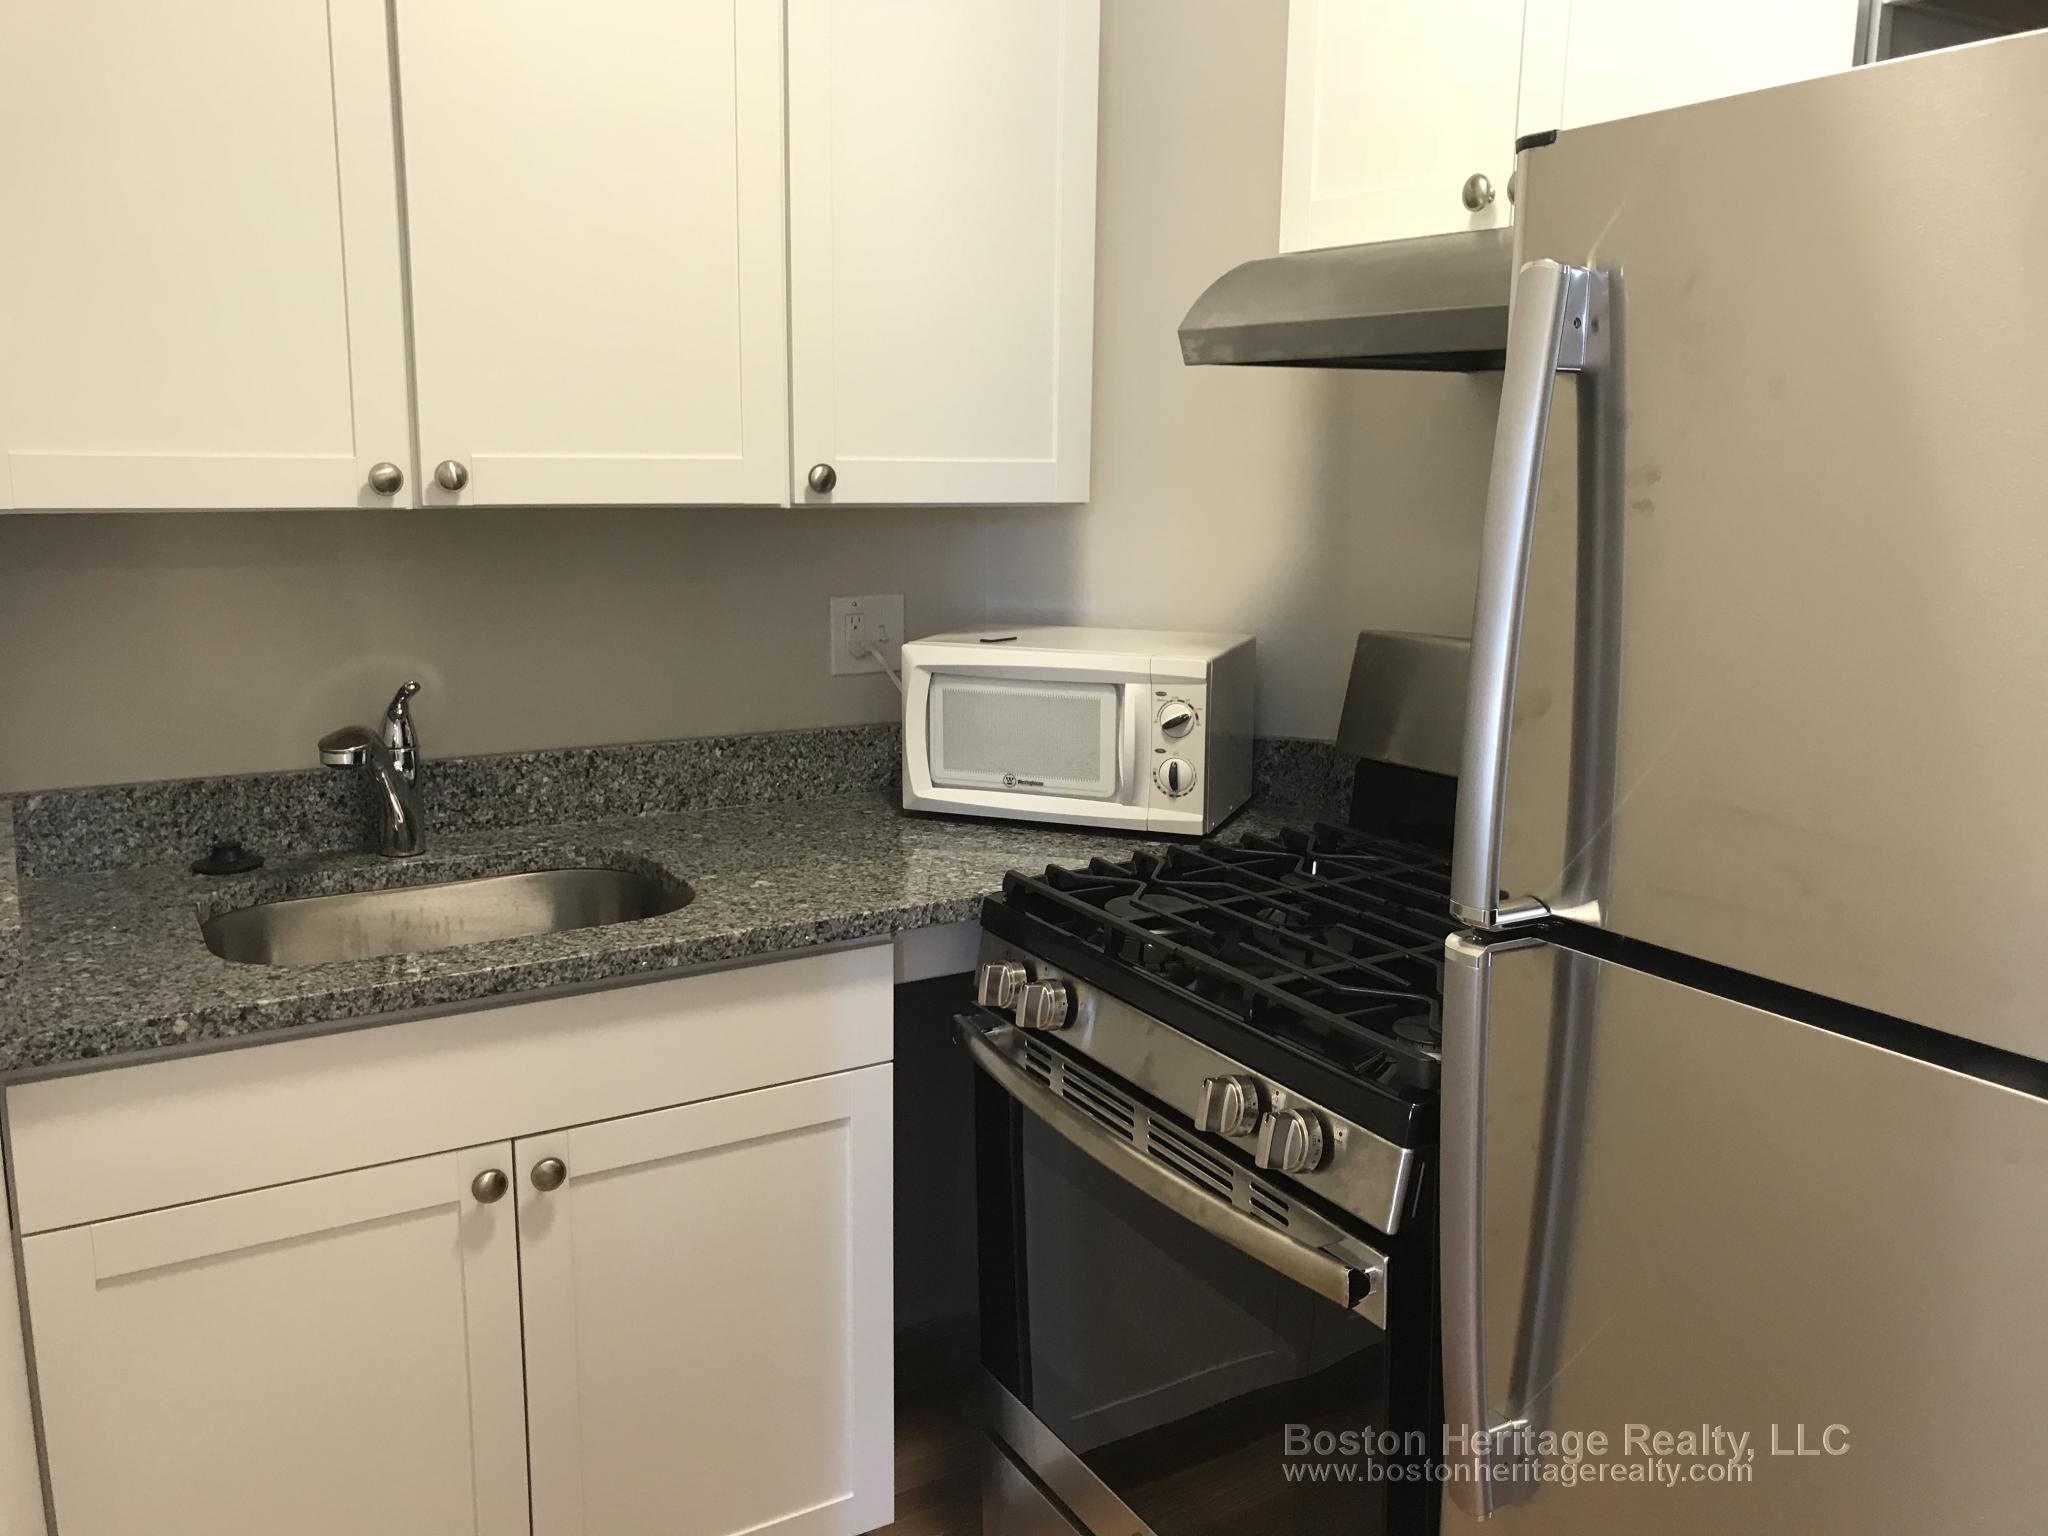 Studio, 1 Bath apartment in Boston, Fenway for $1,700